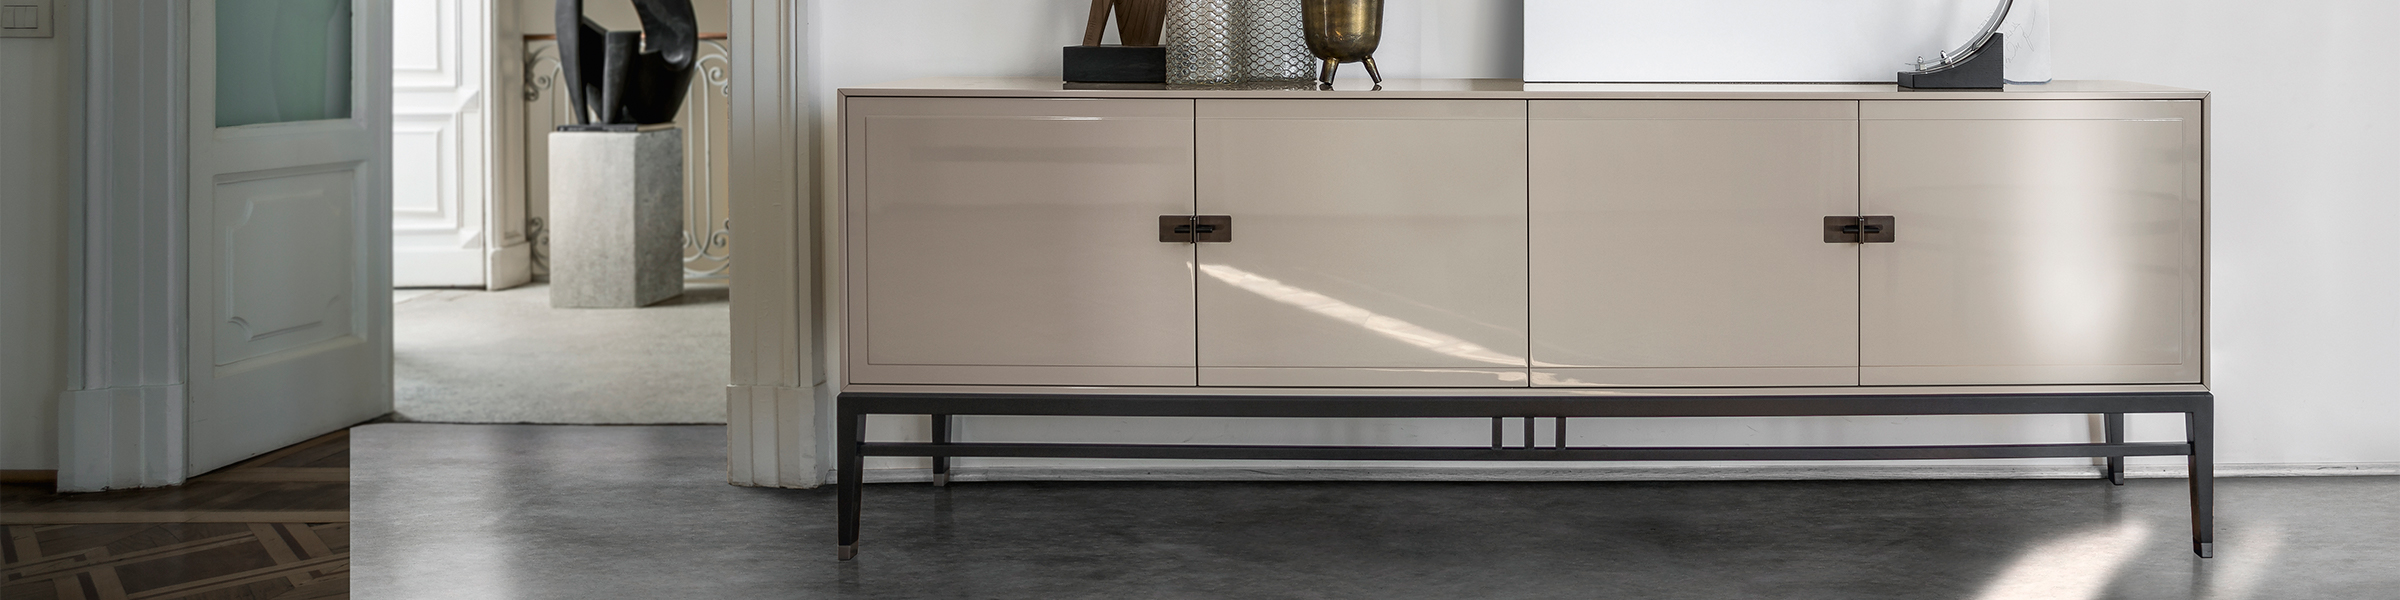 Classic Modern Buffet And Sideboards For Contemporary Living U0026 Dining |  CliffYoung